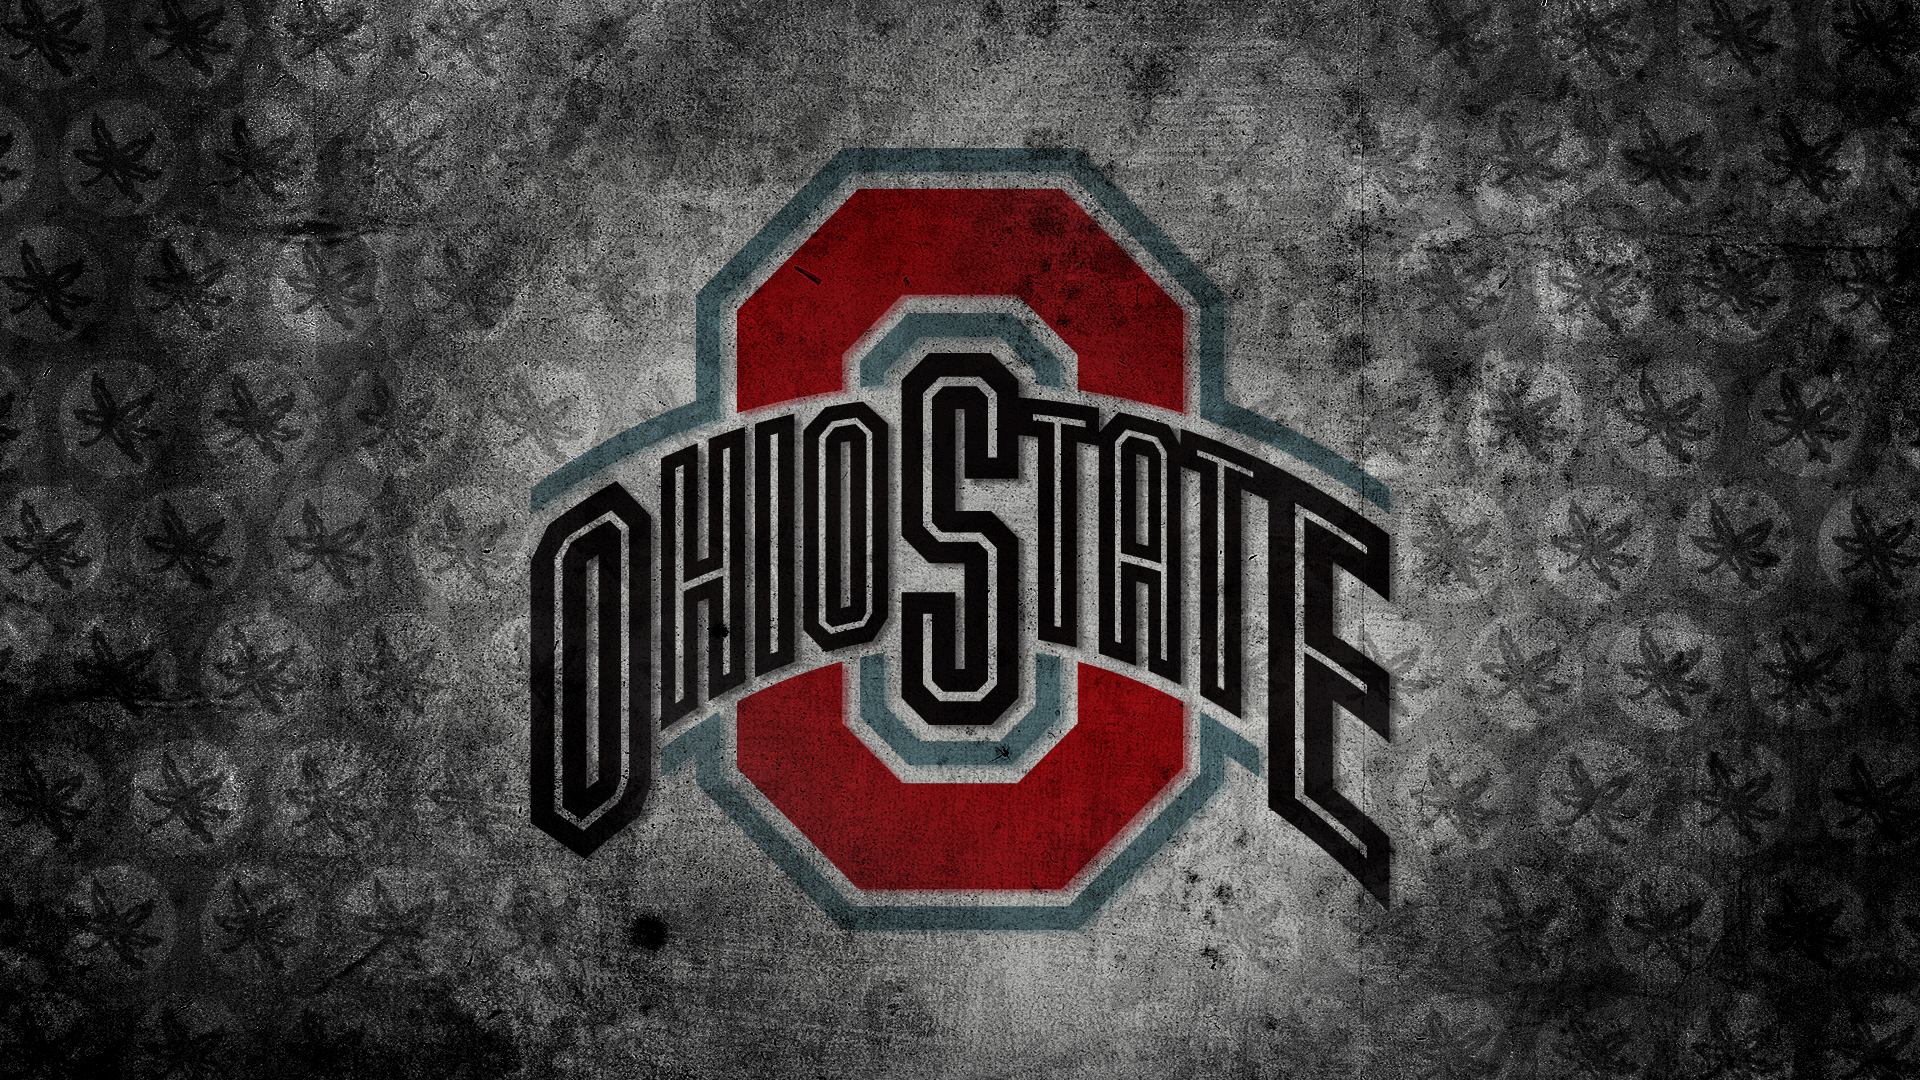 Ohio State Football Helmet Wallpaper Images & Pictures - Becuo